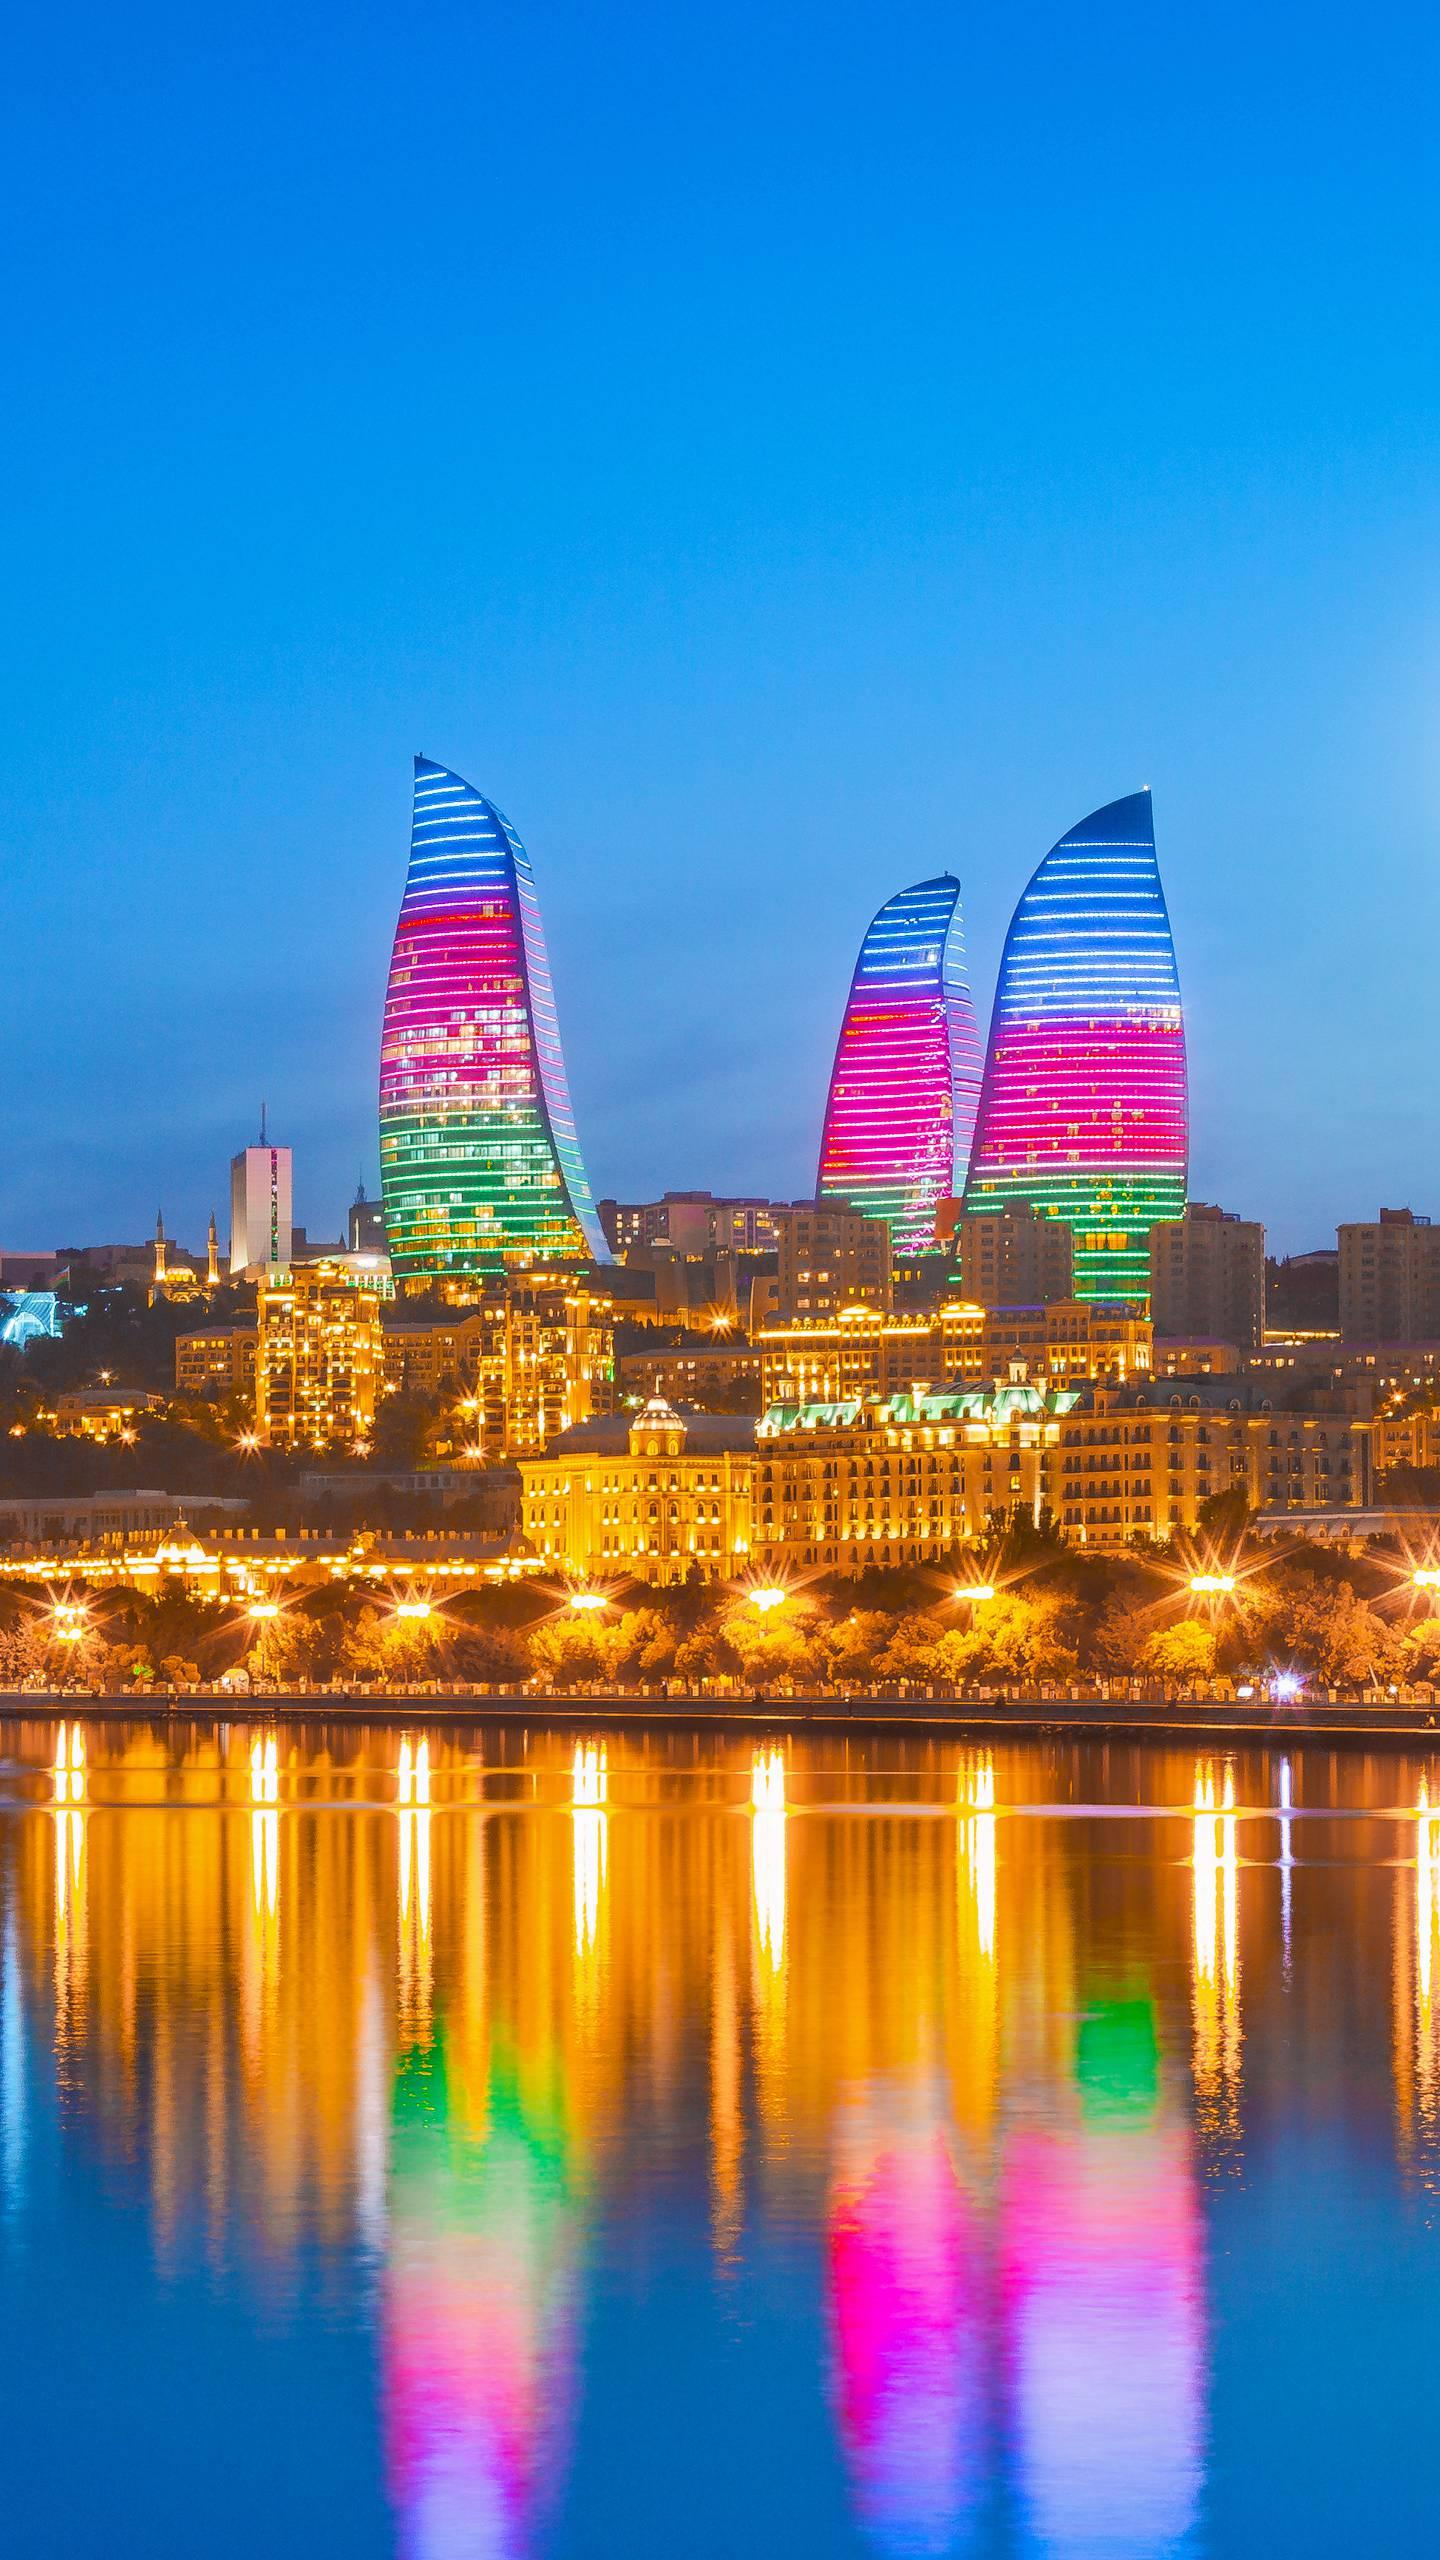 Azerbaijan - Baku. An ancient city with a long history. There are many places of interest in the city and it is the capital of Azerbaijan. ©Engraving Media